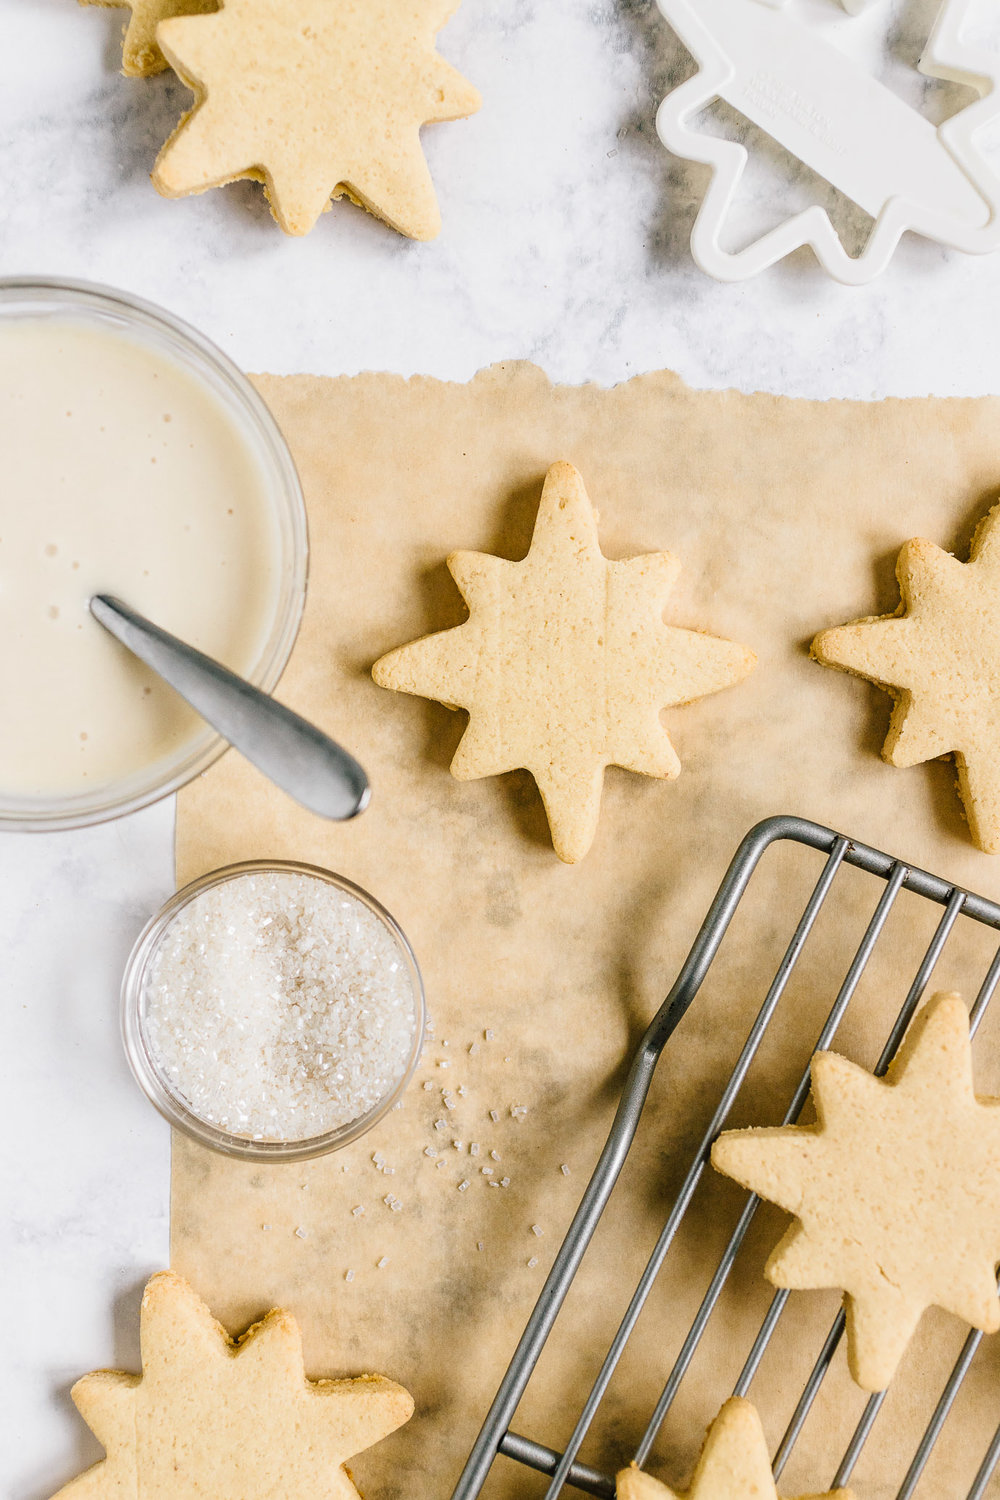 Grain-free almond flour sugar cookies made with a combination of blanched almond flour and coconut flour for the perfect texture. No chilling required!